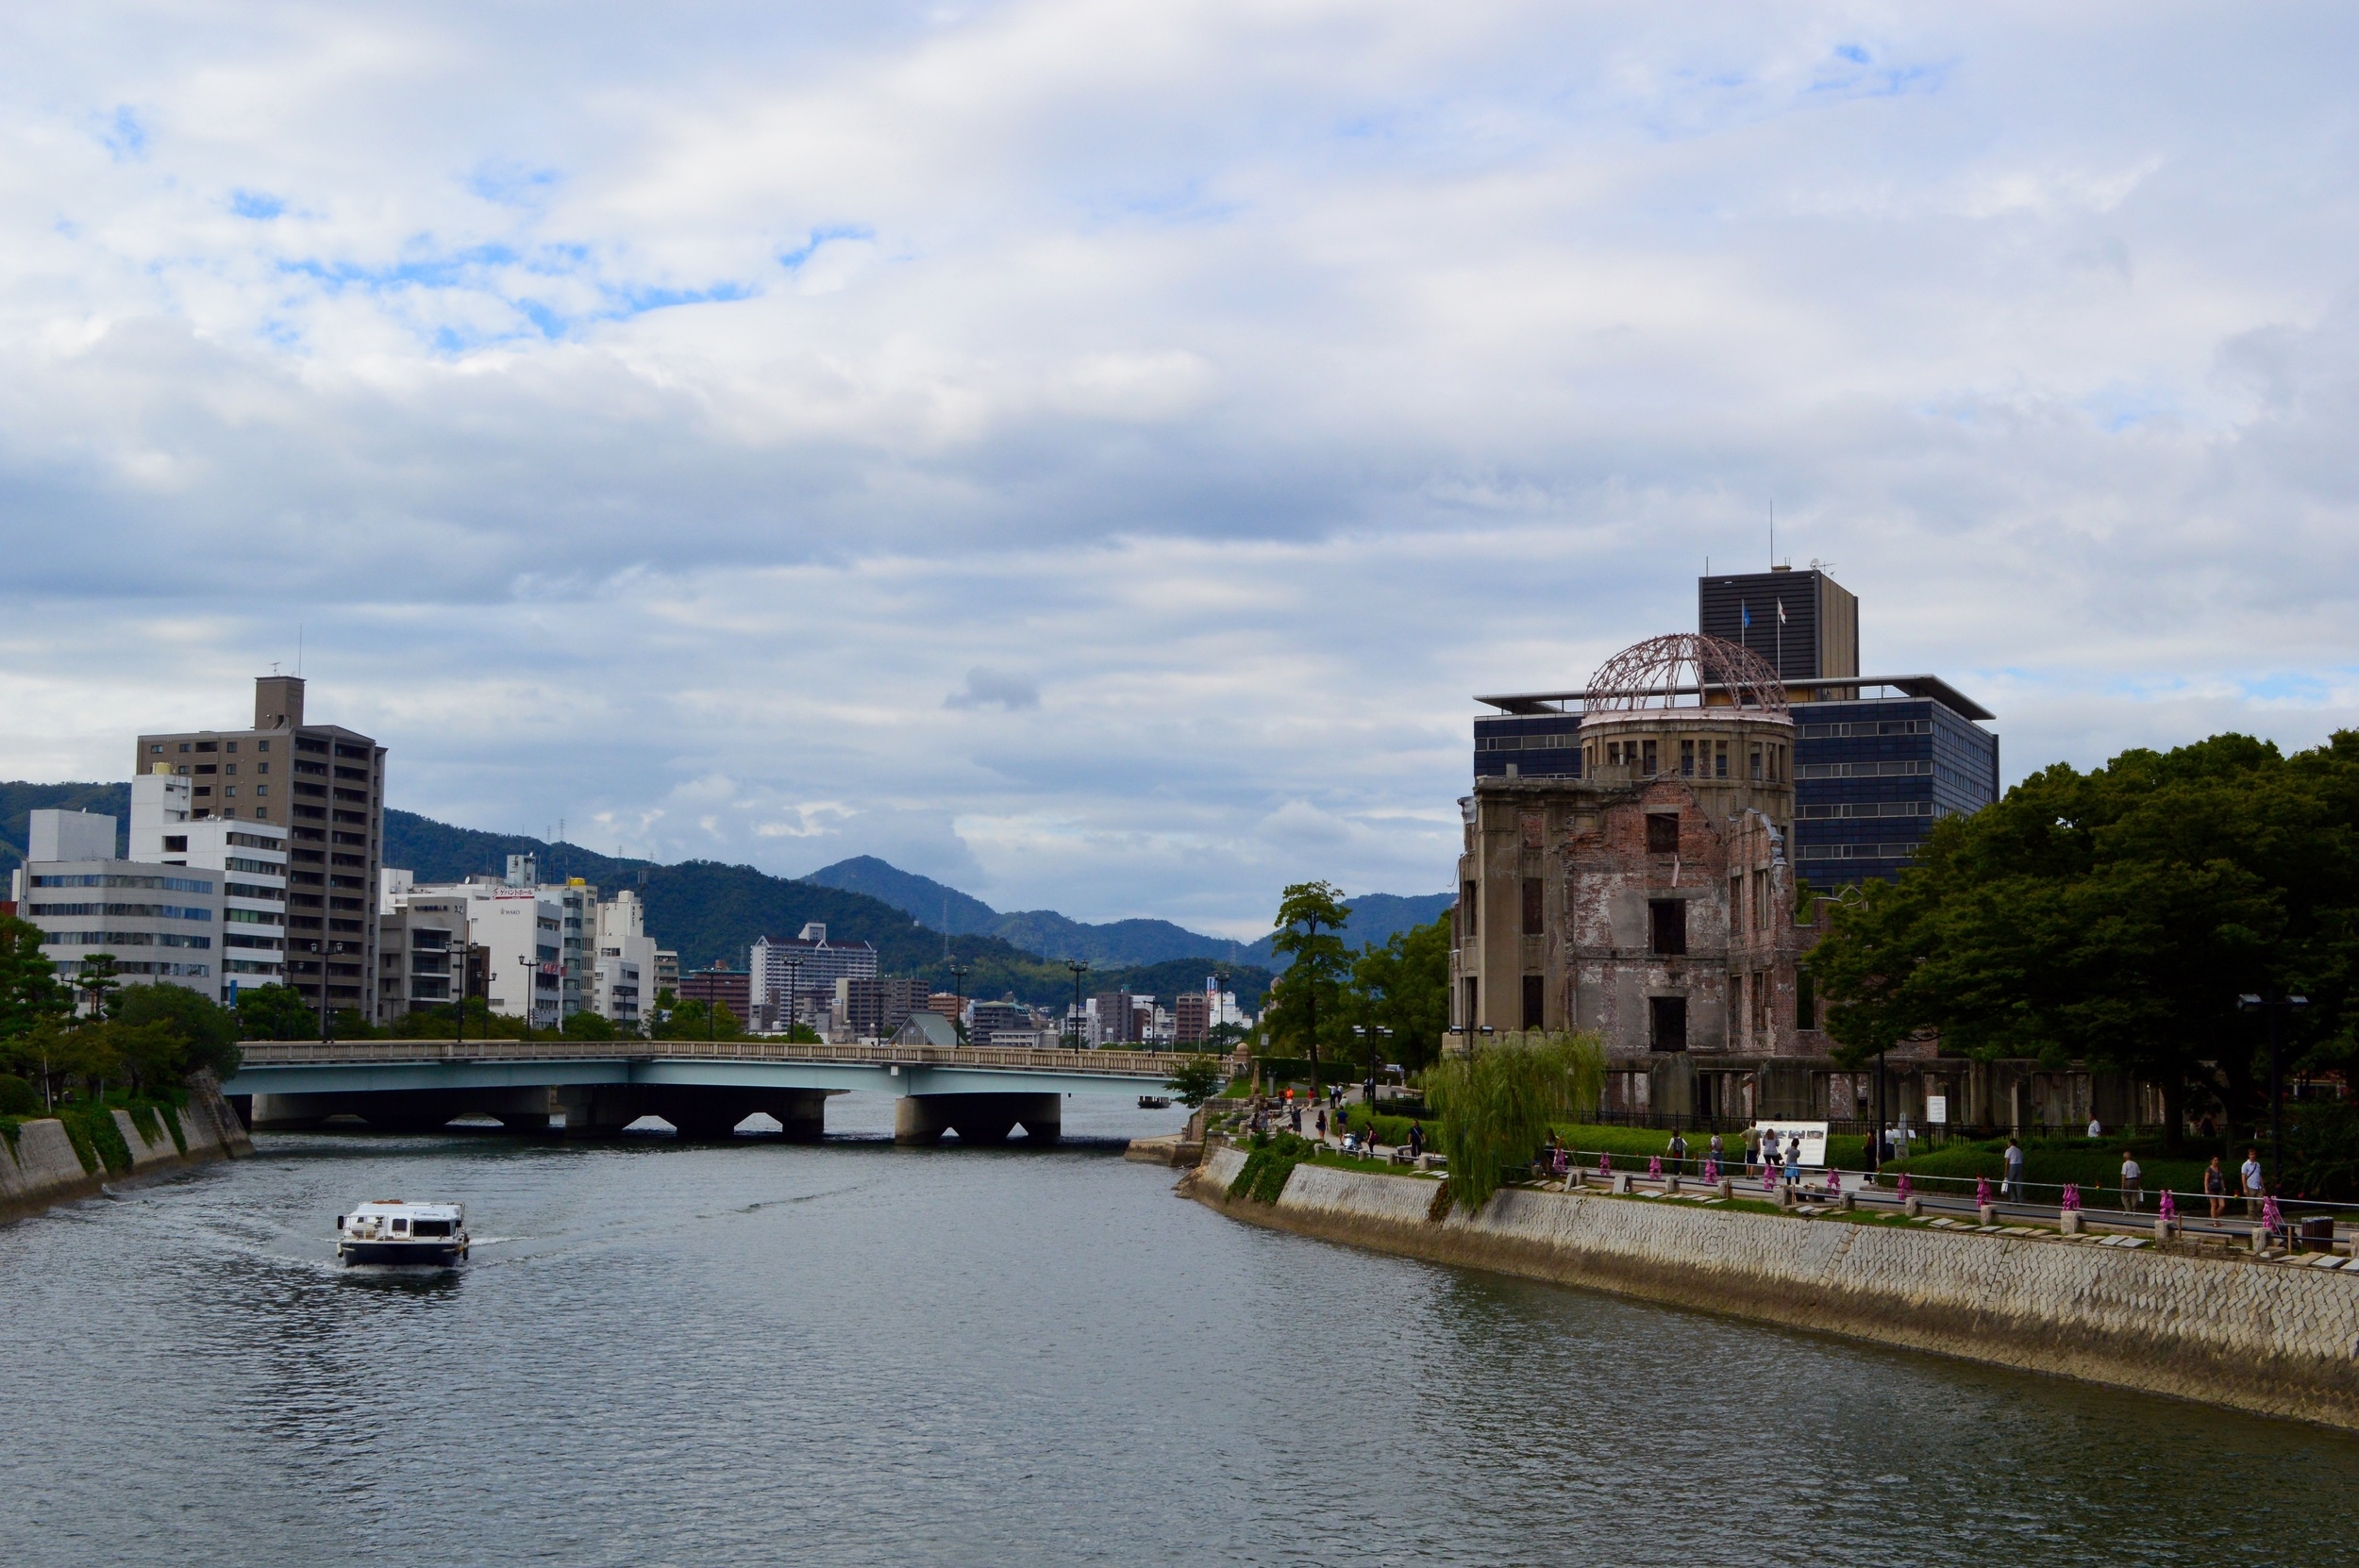 Hiroshima Skyline with A-Bomb Dome